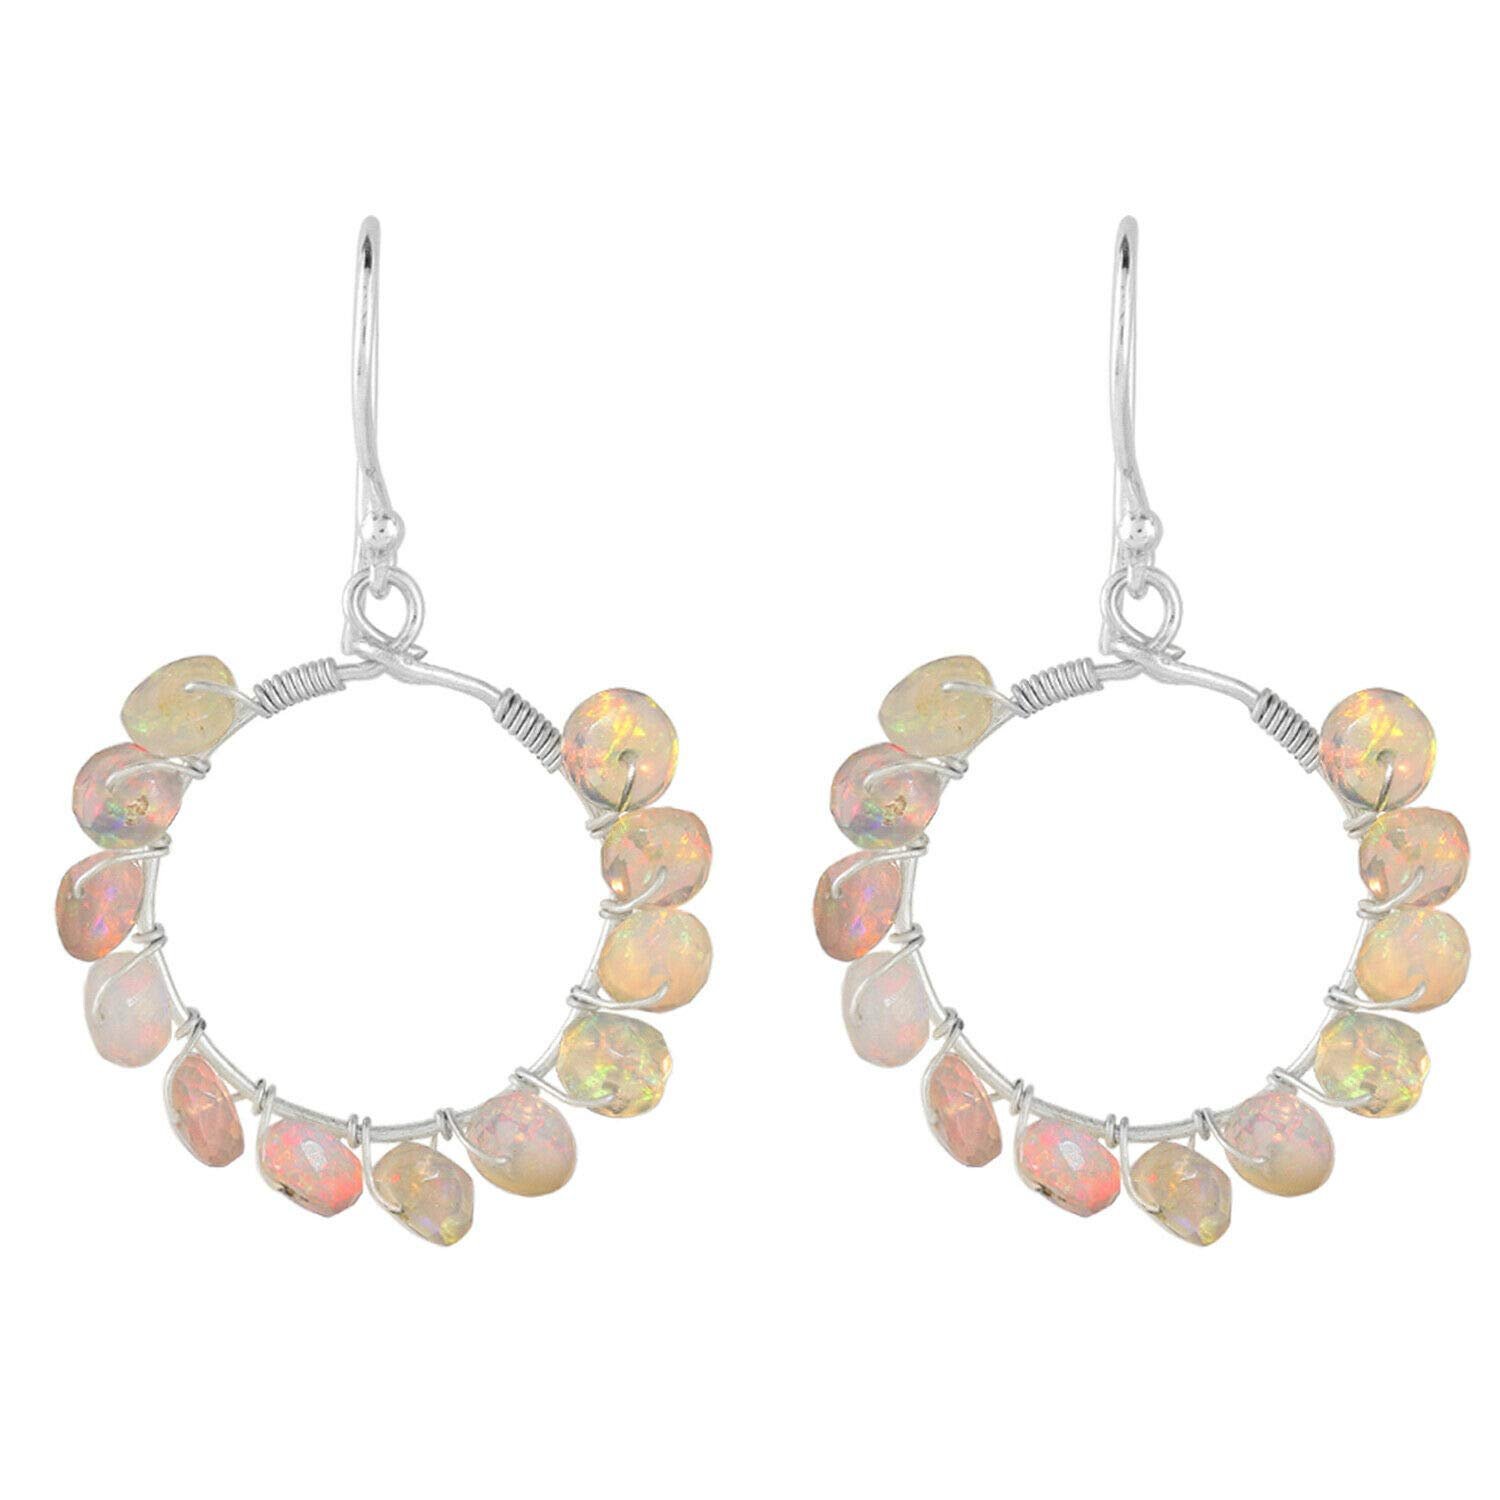 New life Omaha Mall Ethiopian Opal Crystals Hoops Earrings Sterling Silver Face 925